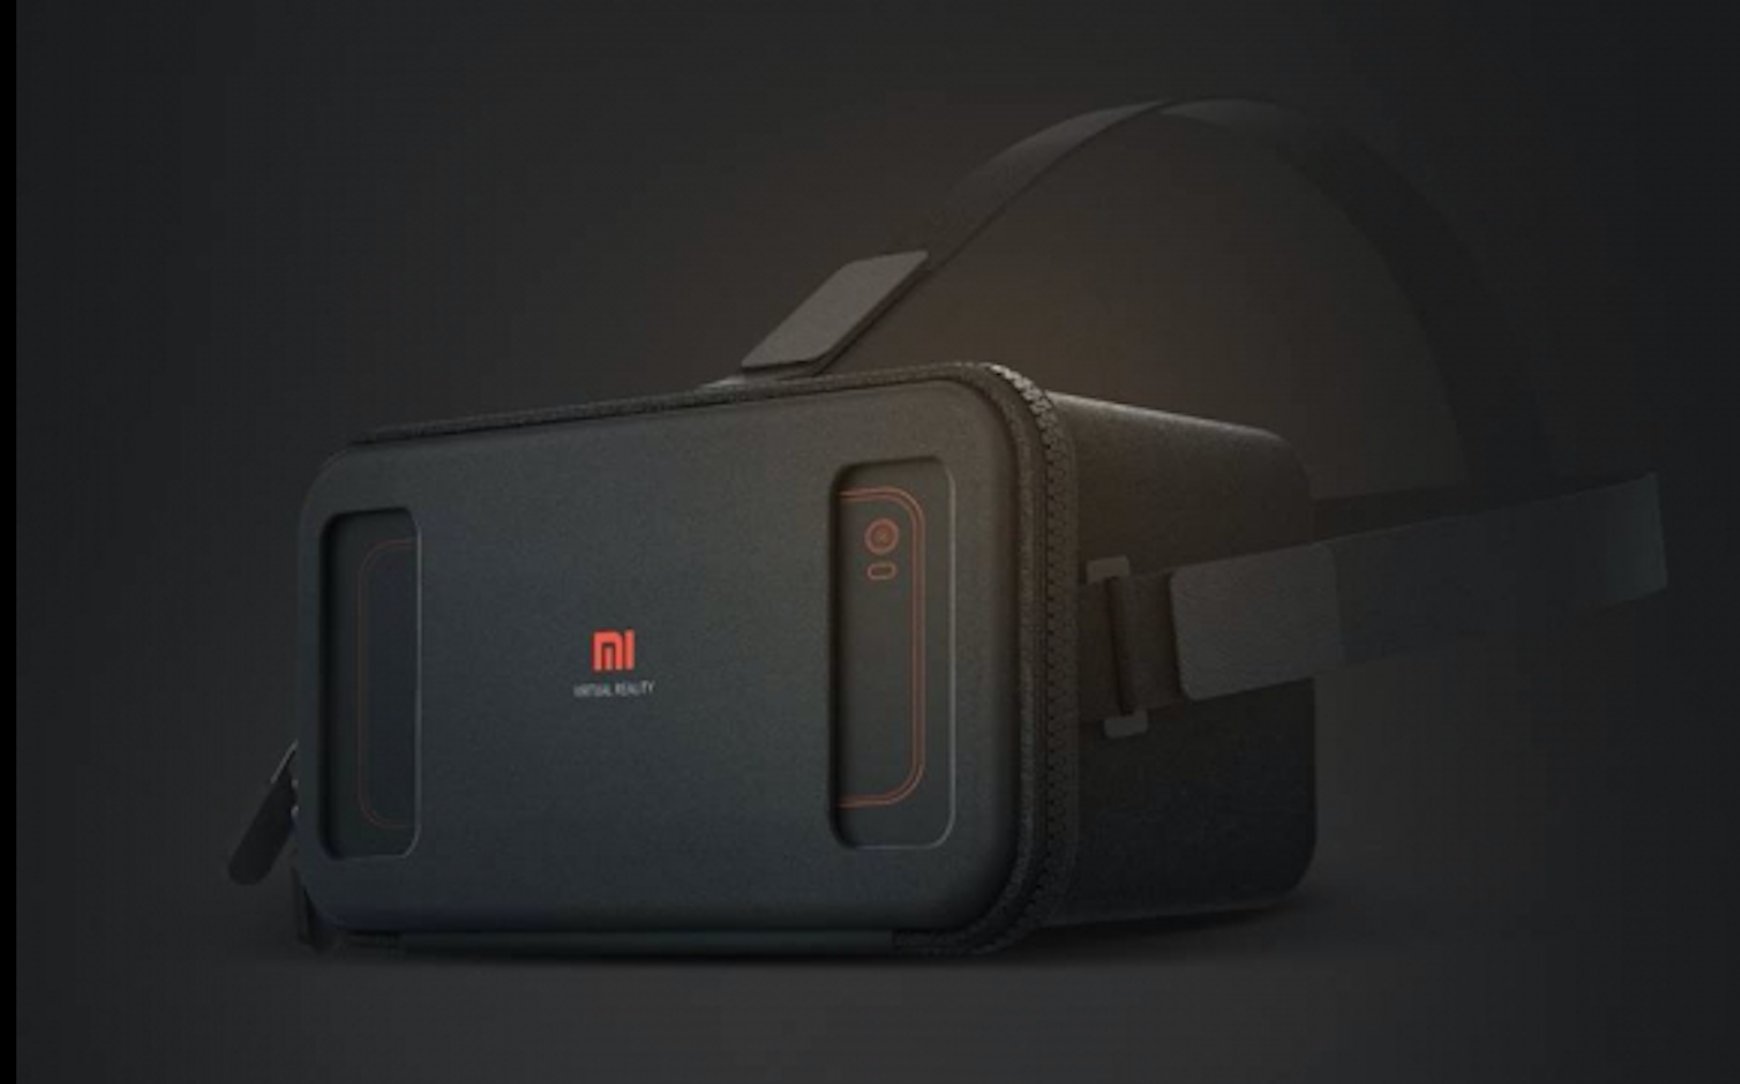 mi-vr-play-featured